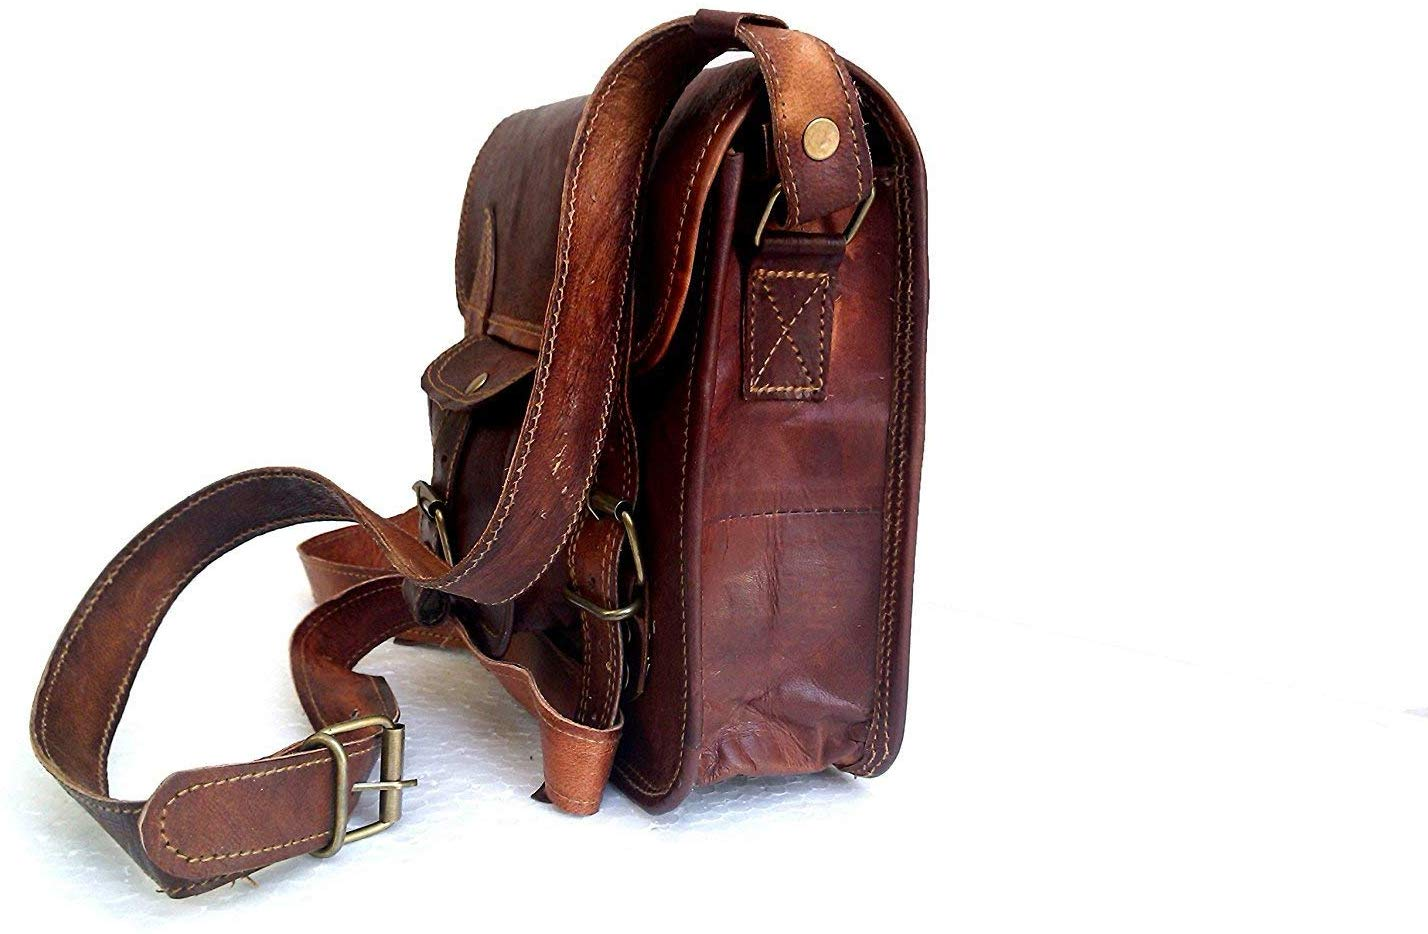 Genuine Leather Bag Laptop Vintage Messenger Bag Handmade Unisex Fits Laptop Upto (11 Inches)